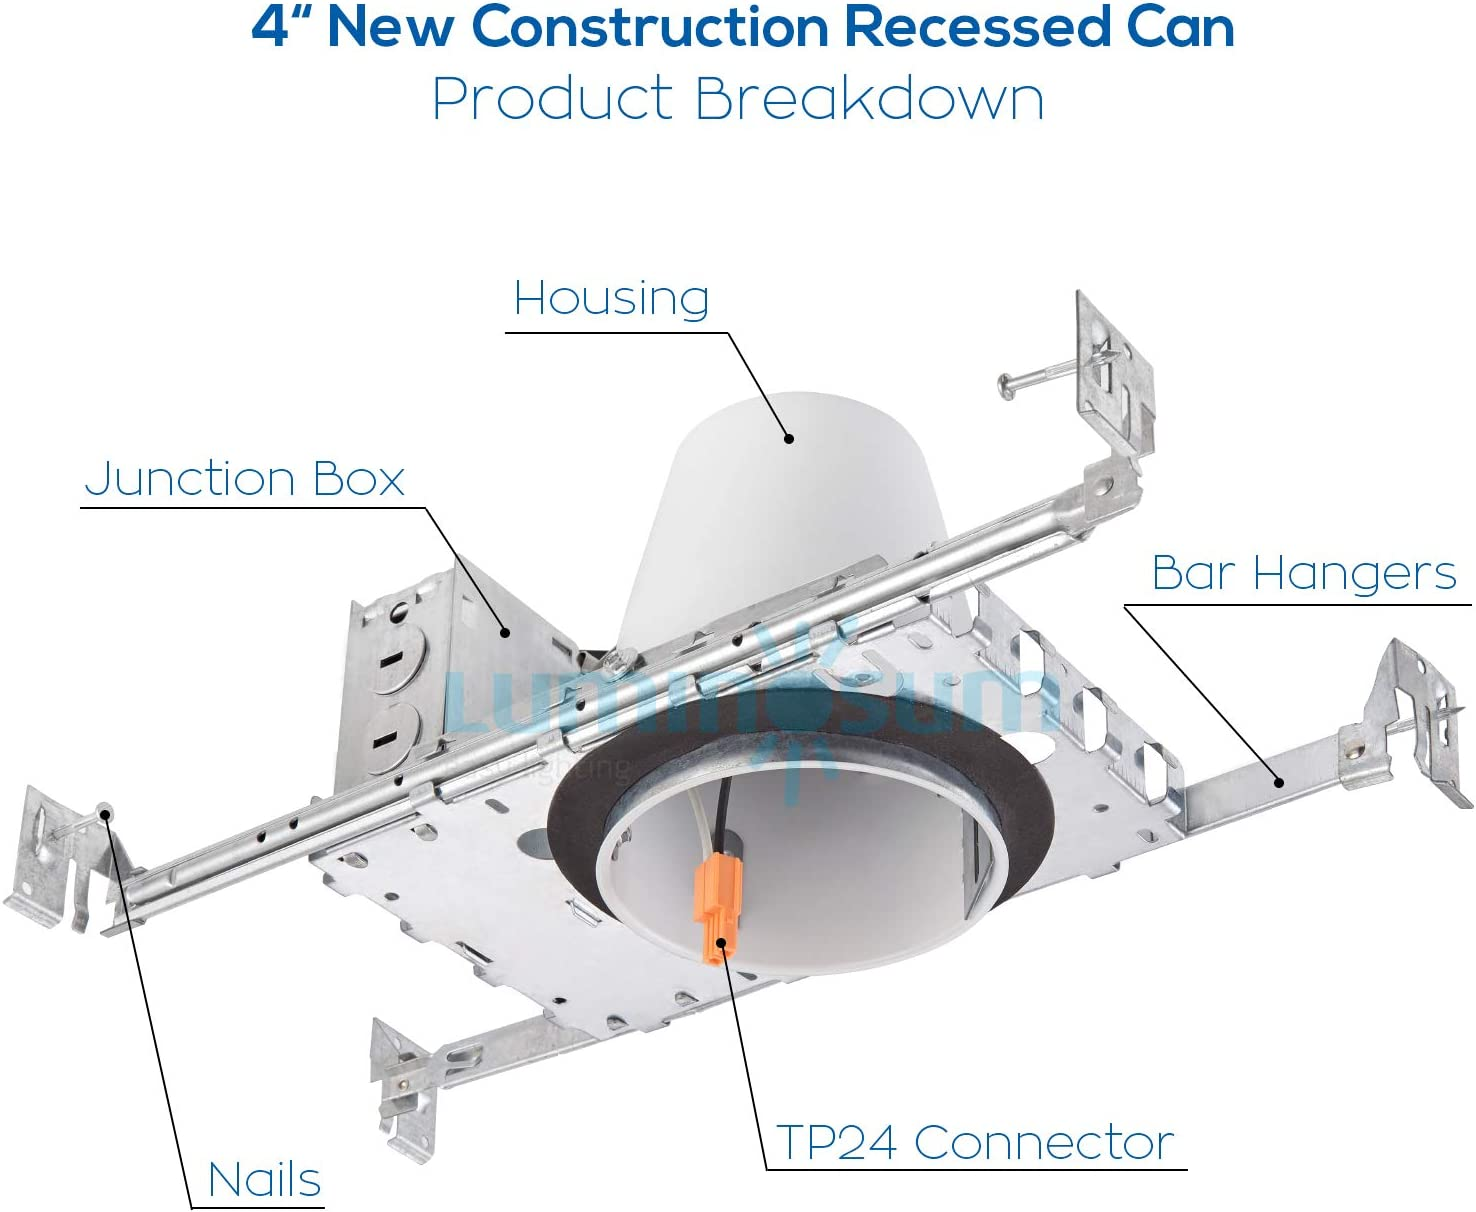 Non-IC Housing LUMINOSUM 4 Inch New Construction Recessed Can with TP24 Connector and E26 Socket 8-Pack UL-Listed